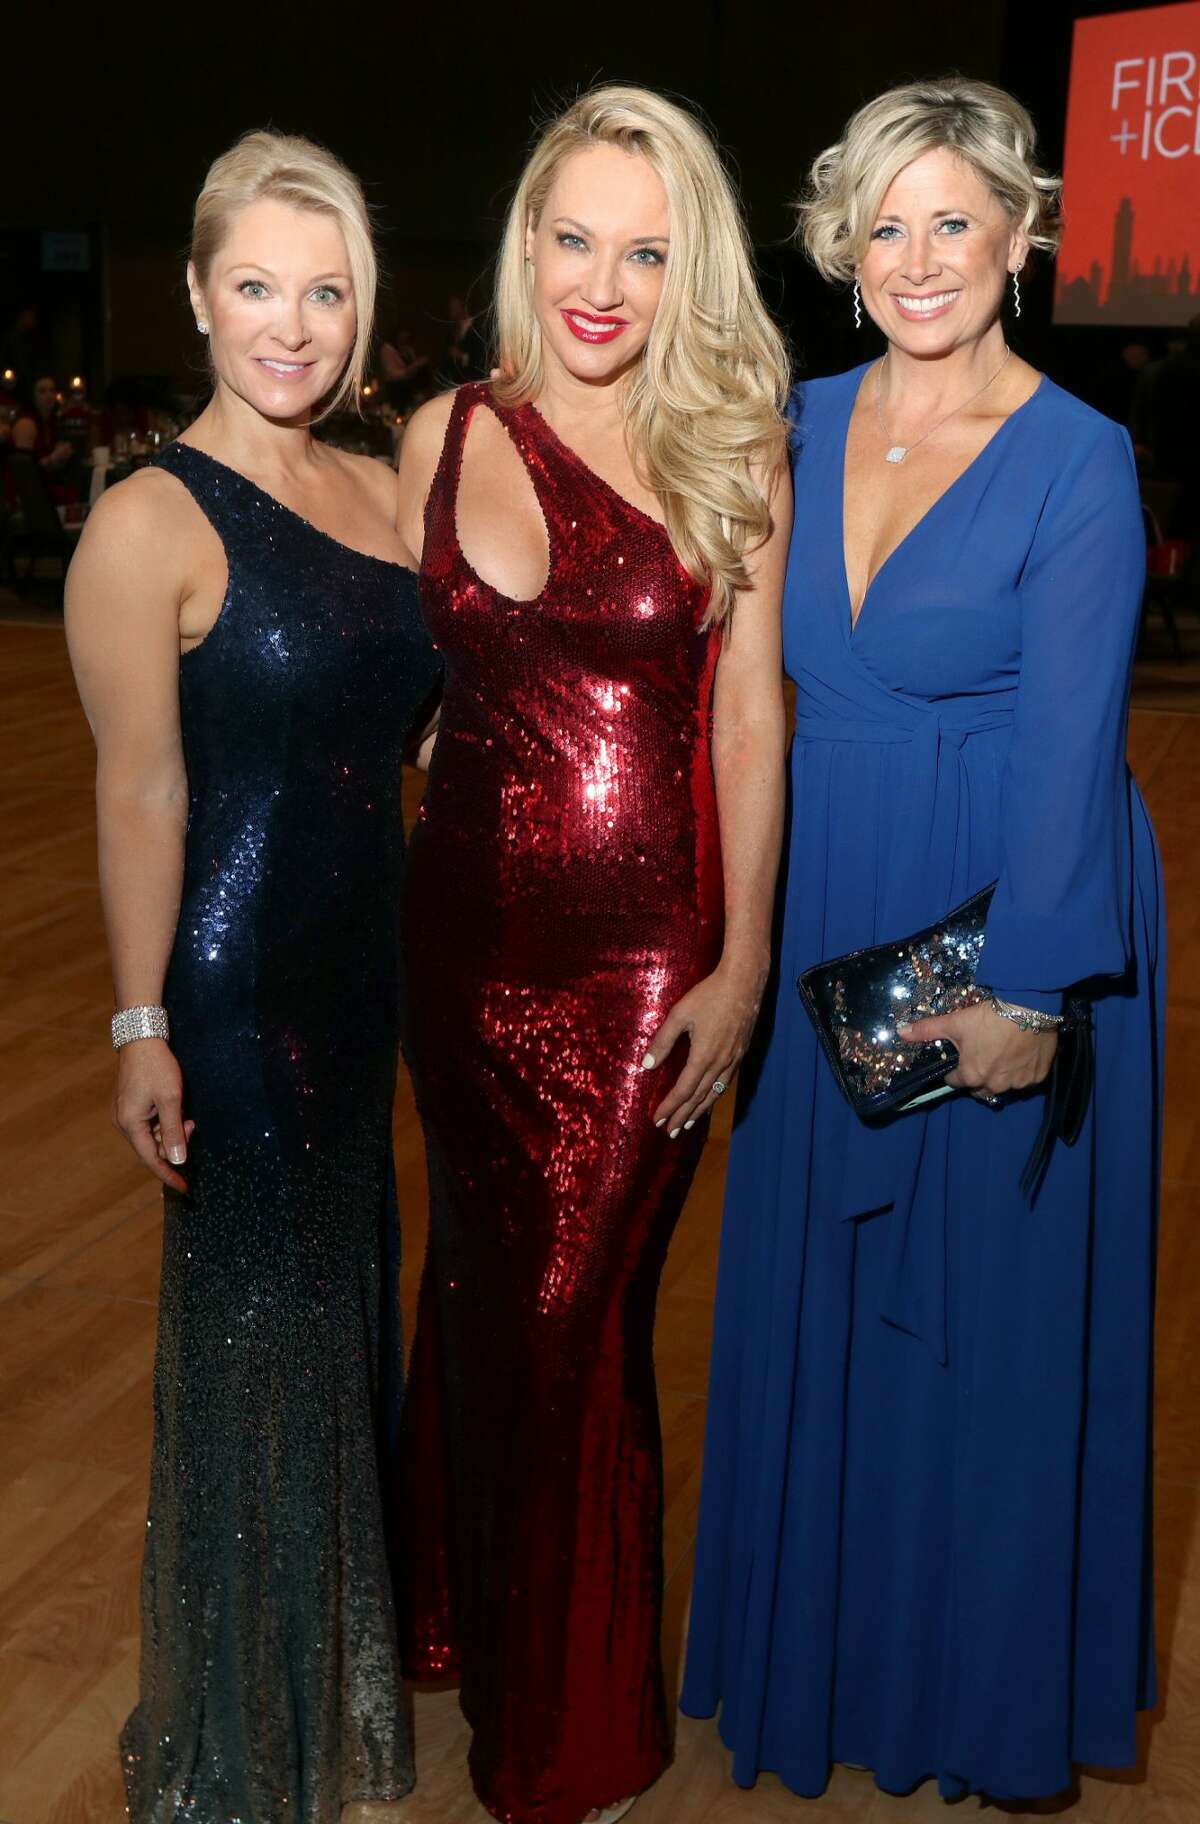 Were You Seen at the American Red Cross of Northeastern New York's Fire + Ice Gala at the Albany Capital Center on Saturday, April 6, 2019?